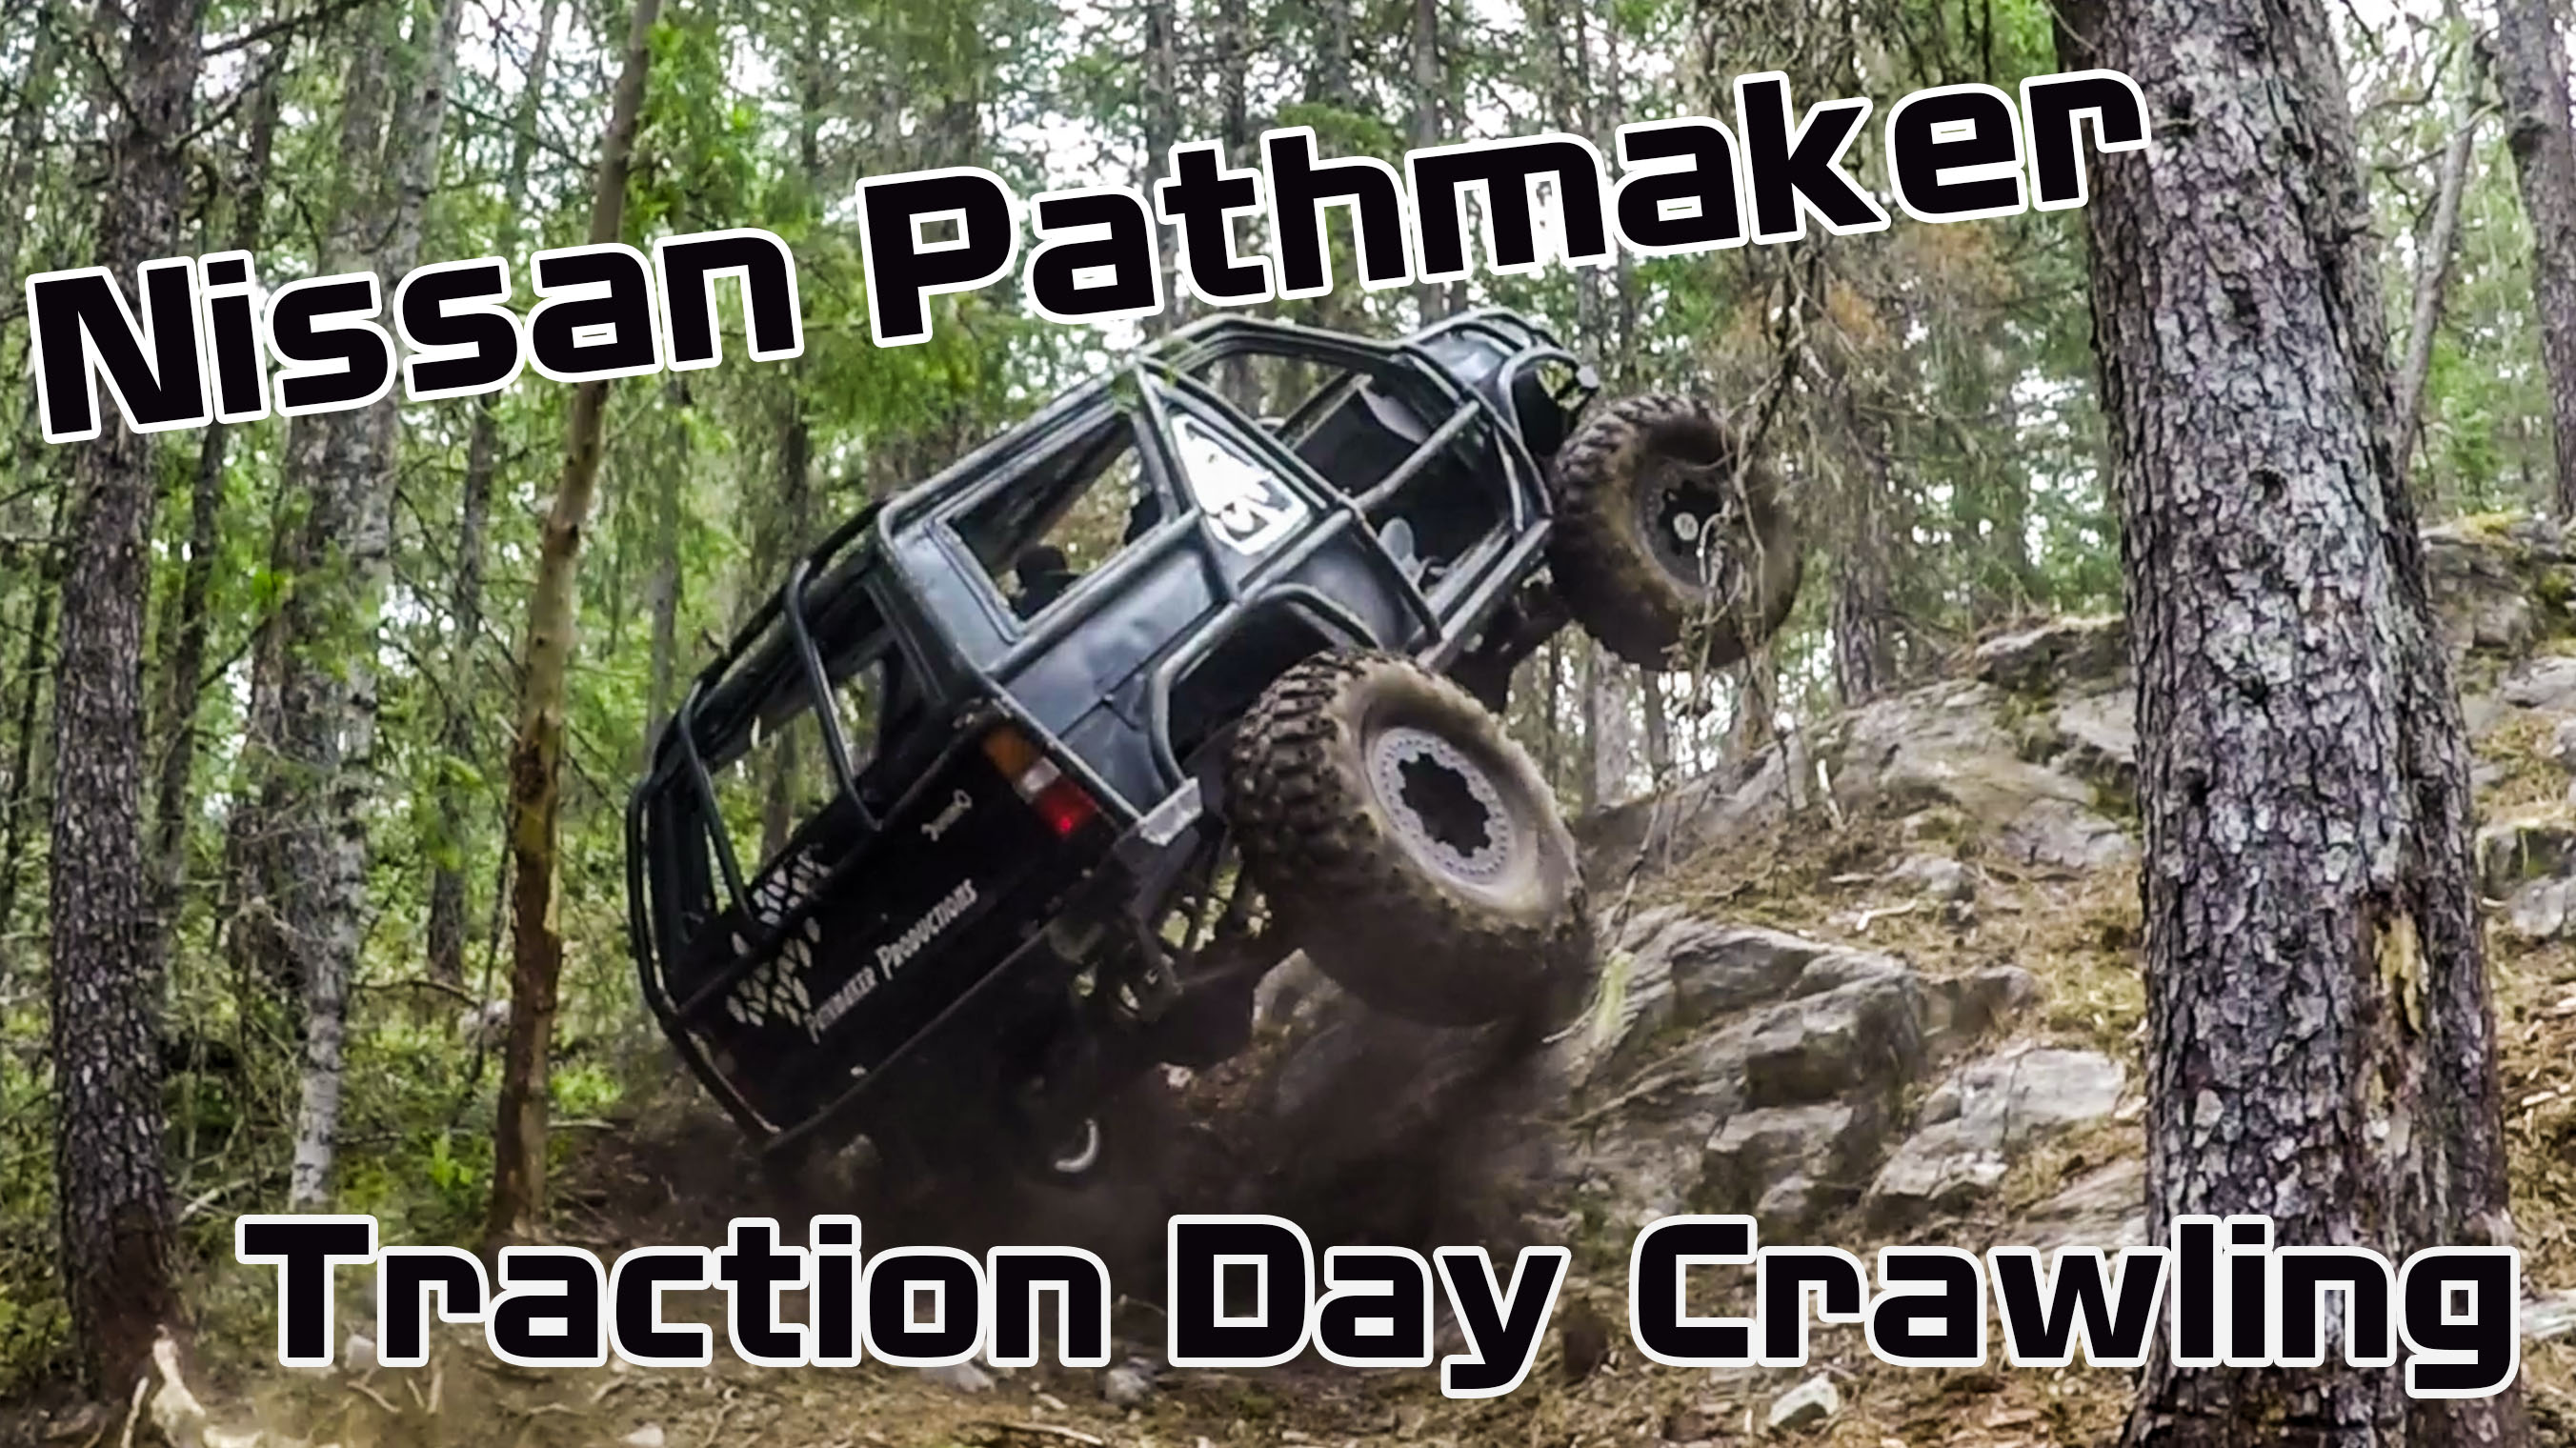 Pathmaker Traction Day Rock Crawling